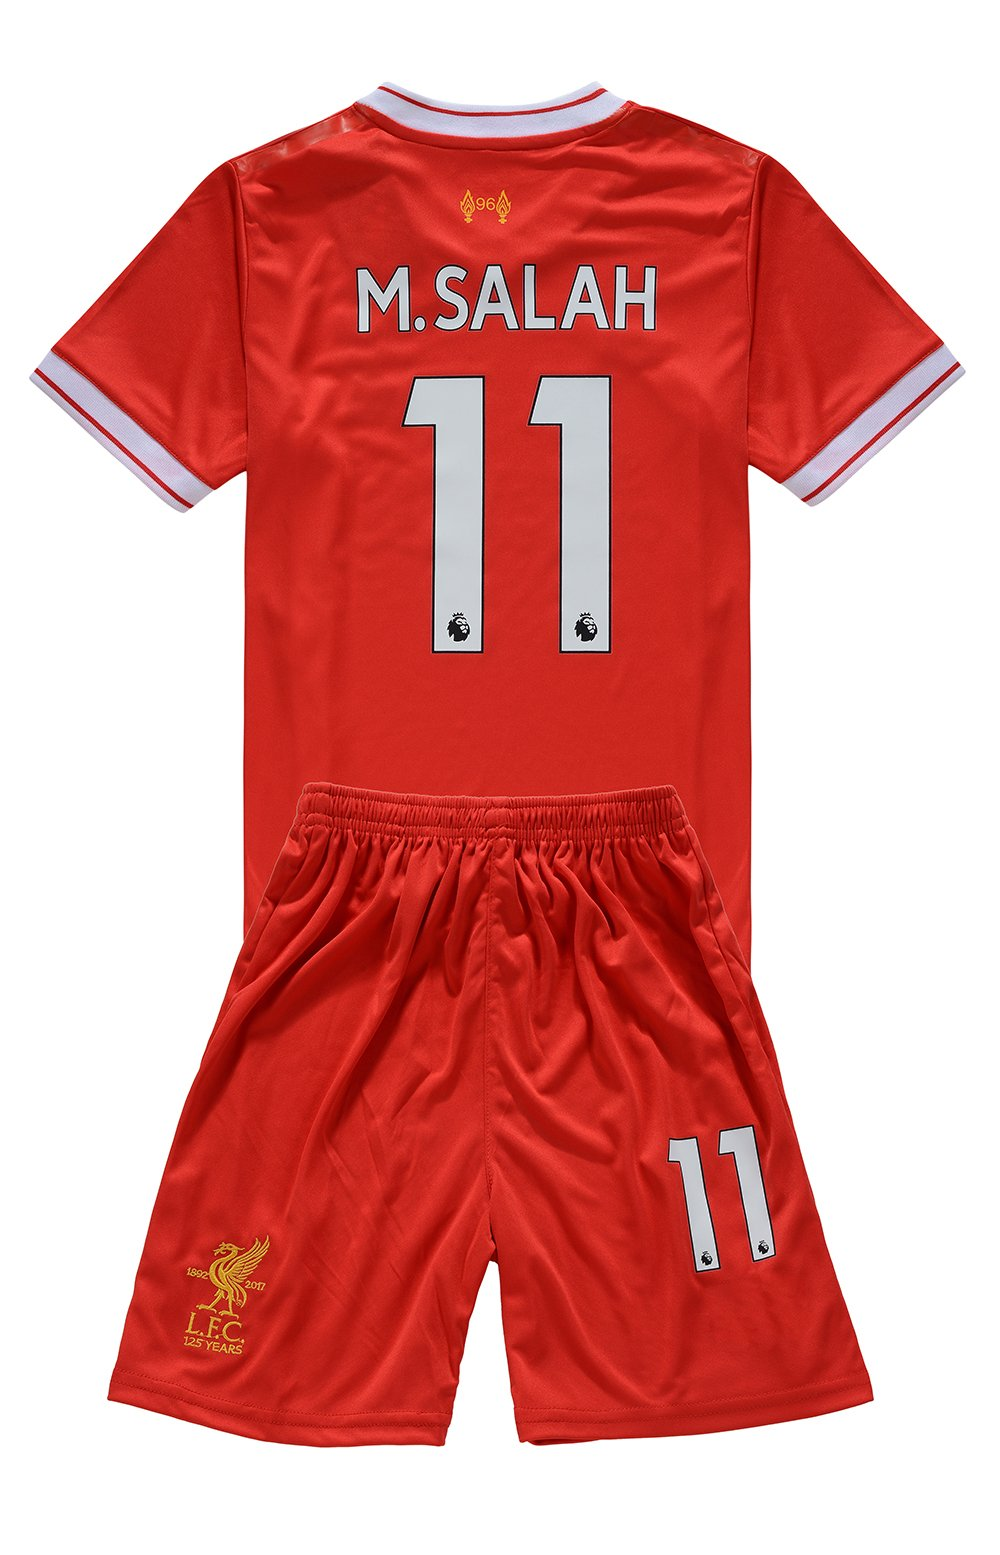 MensHotyo 2017/2018 Liverpool Mohamed Salah 11 Kids/Youths Home Soccer Jersey Shorts